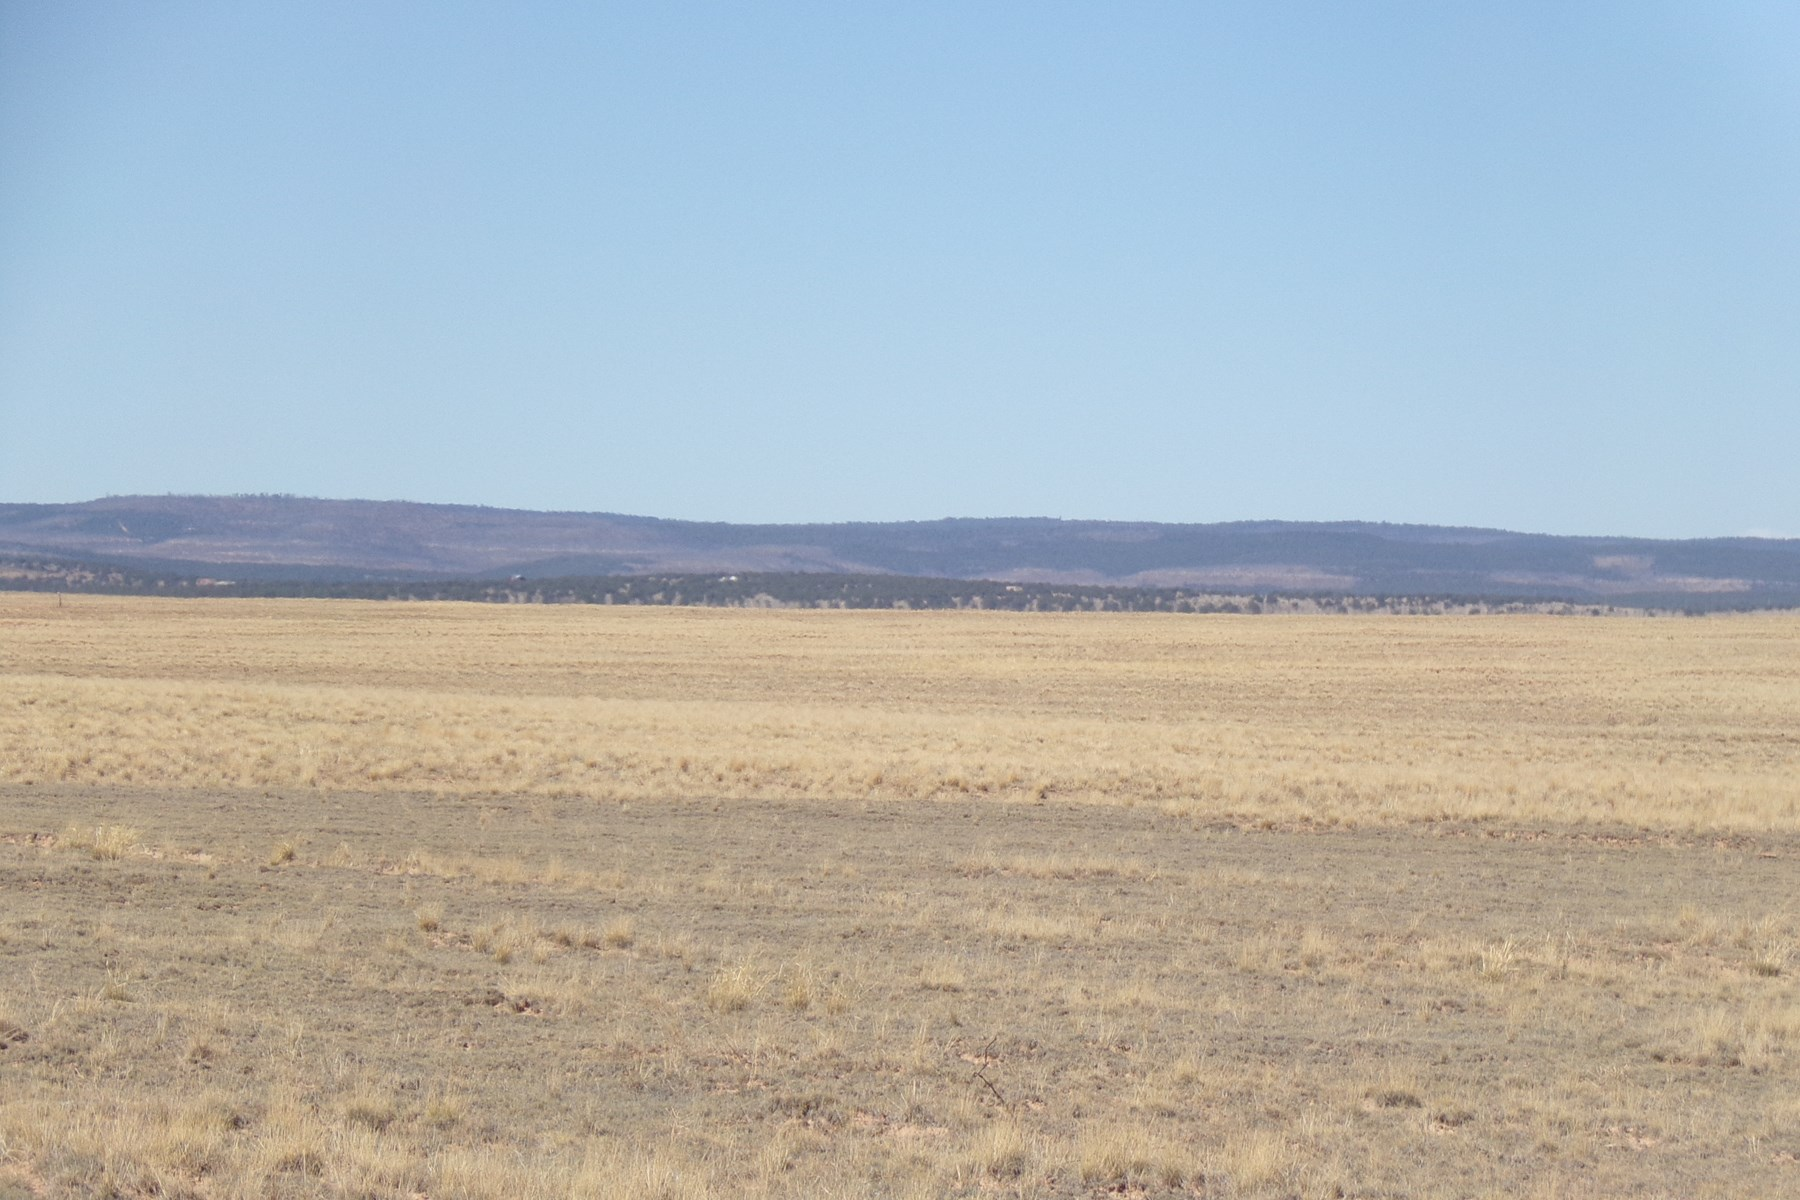 Farm & Ranch Land Estancia NM For Sale with Water